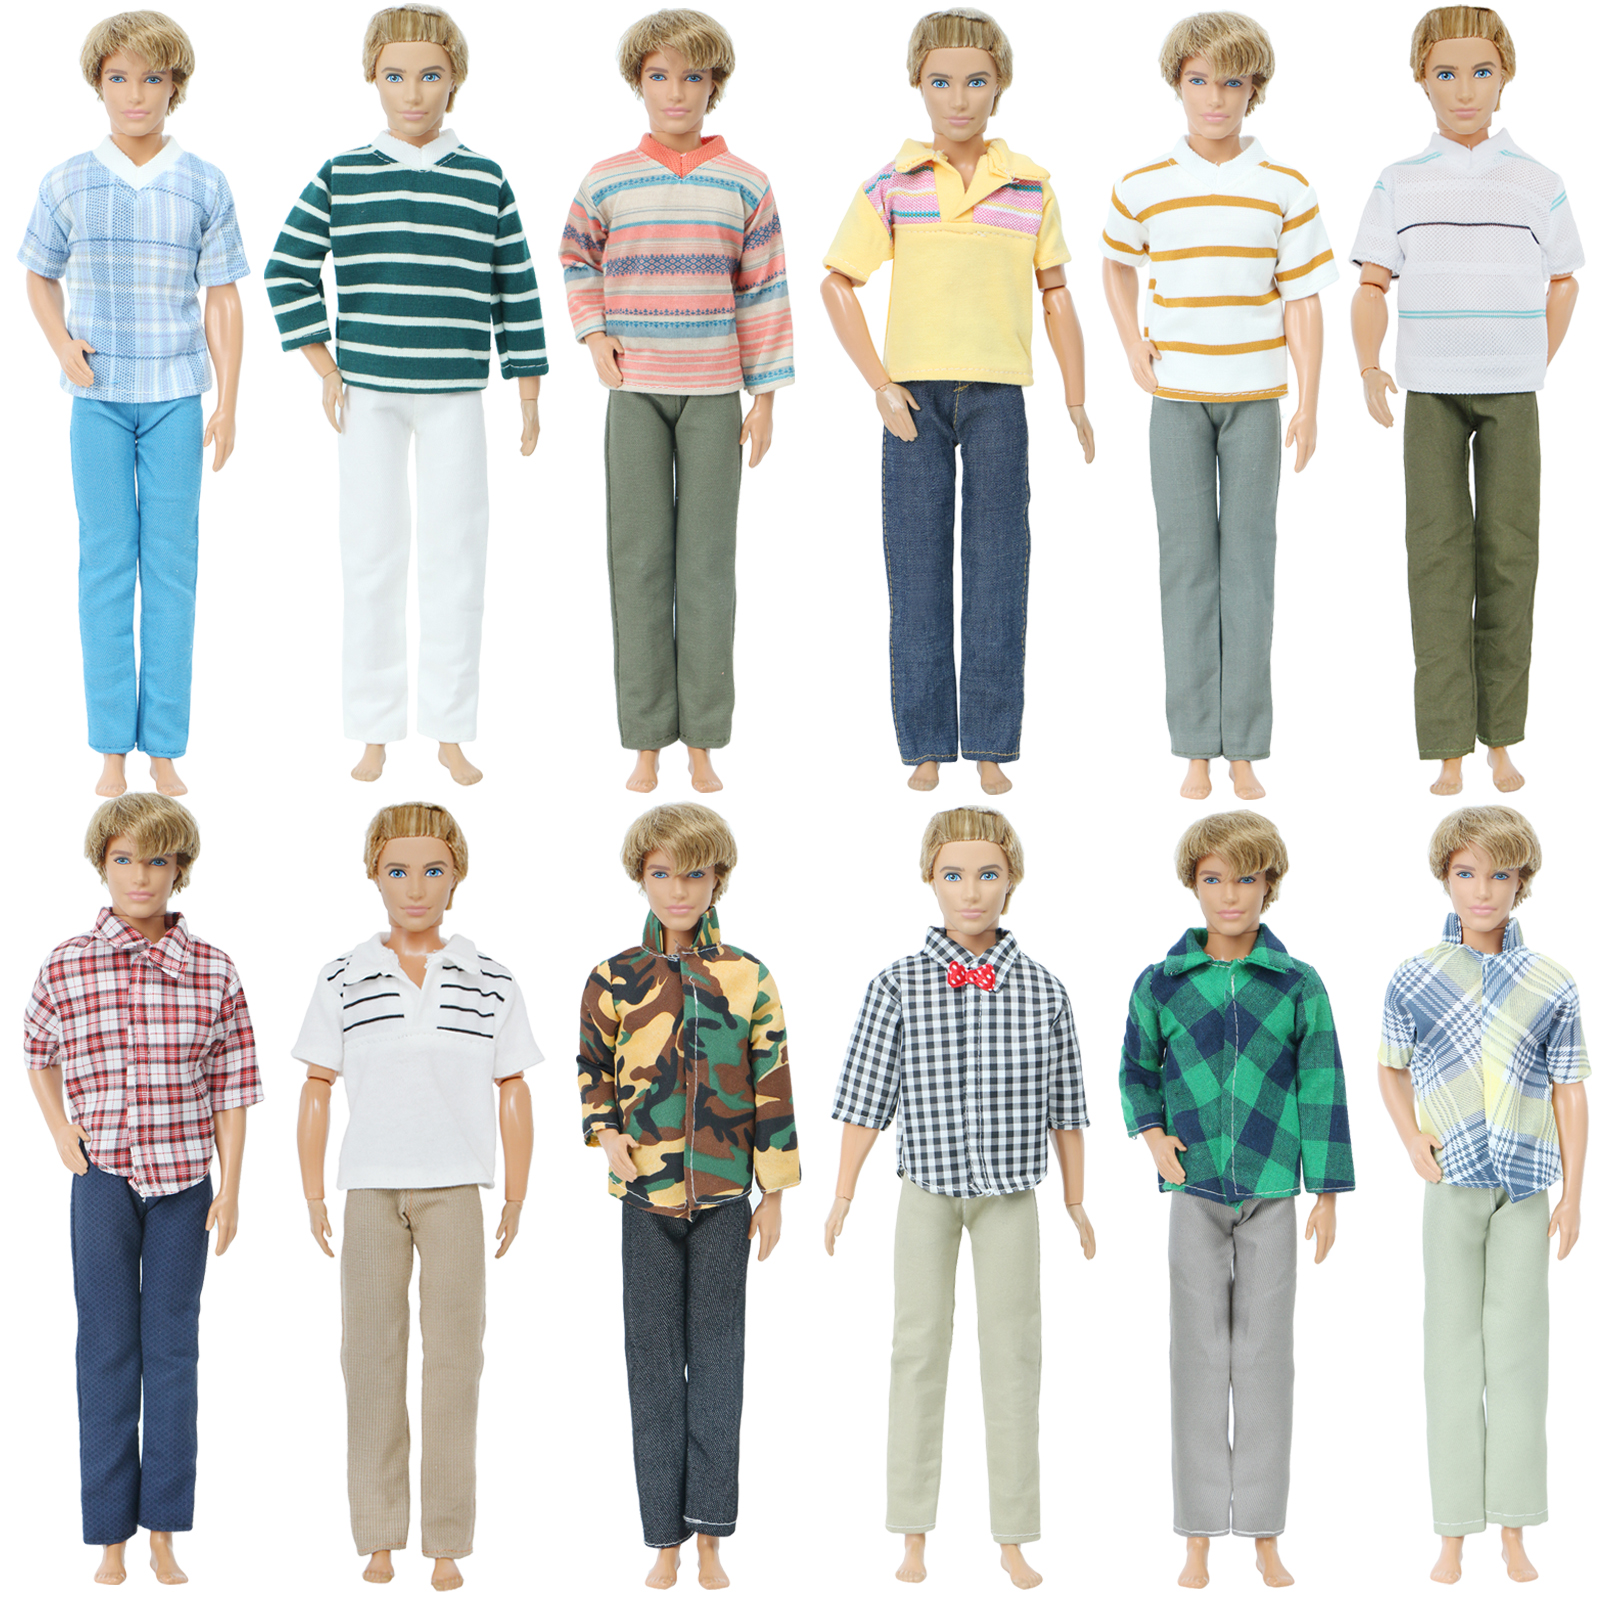 1 Set Men Daily Casual Outfit Trousers Wide Leg Pants + Striped Plaid Lattice Shirt Clothes For Barbie Ken Doll Accessories Toy